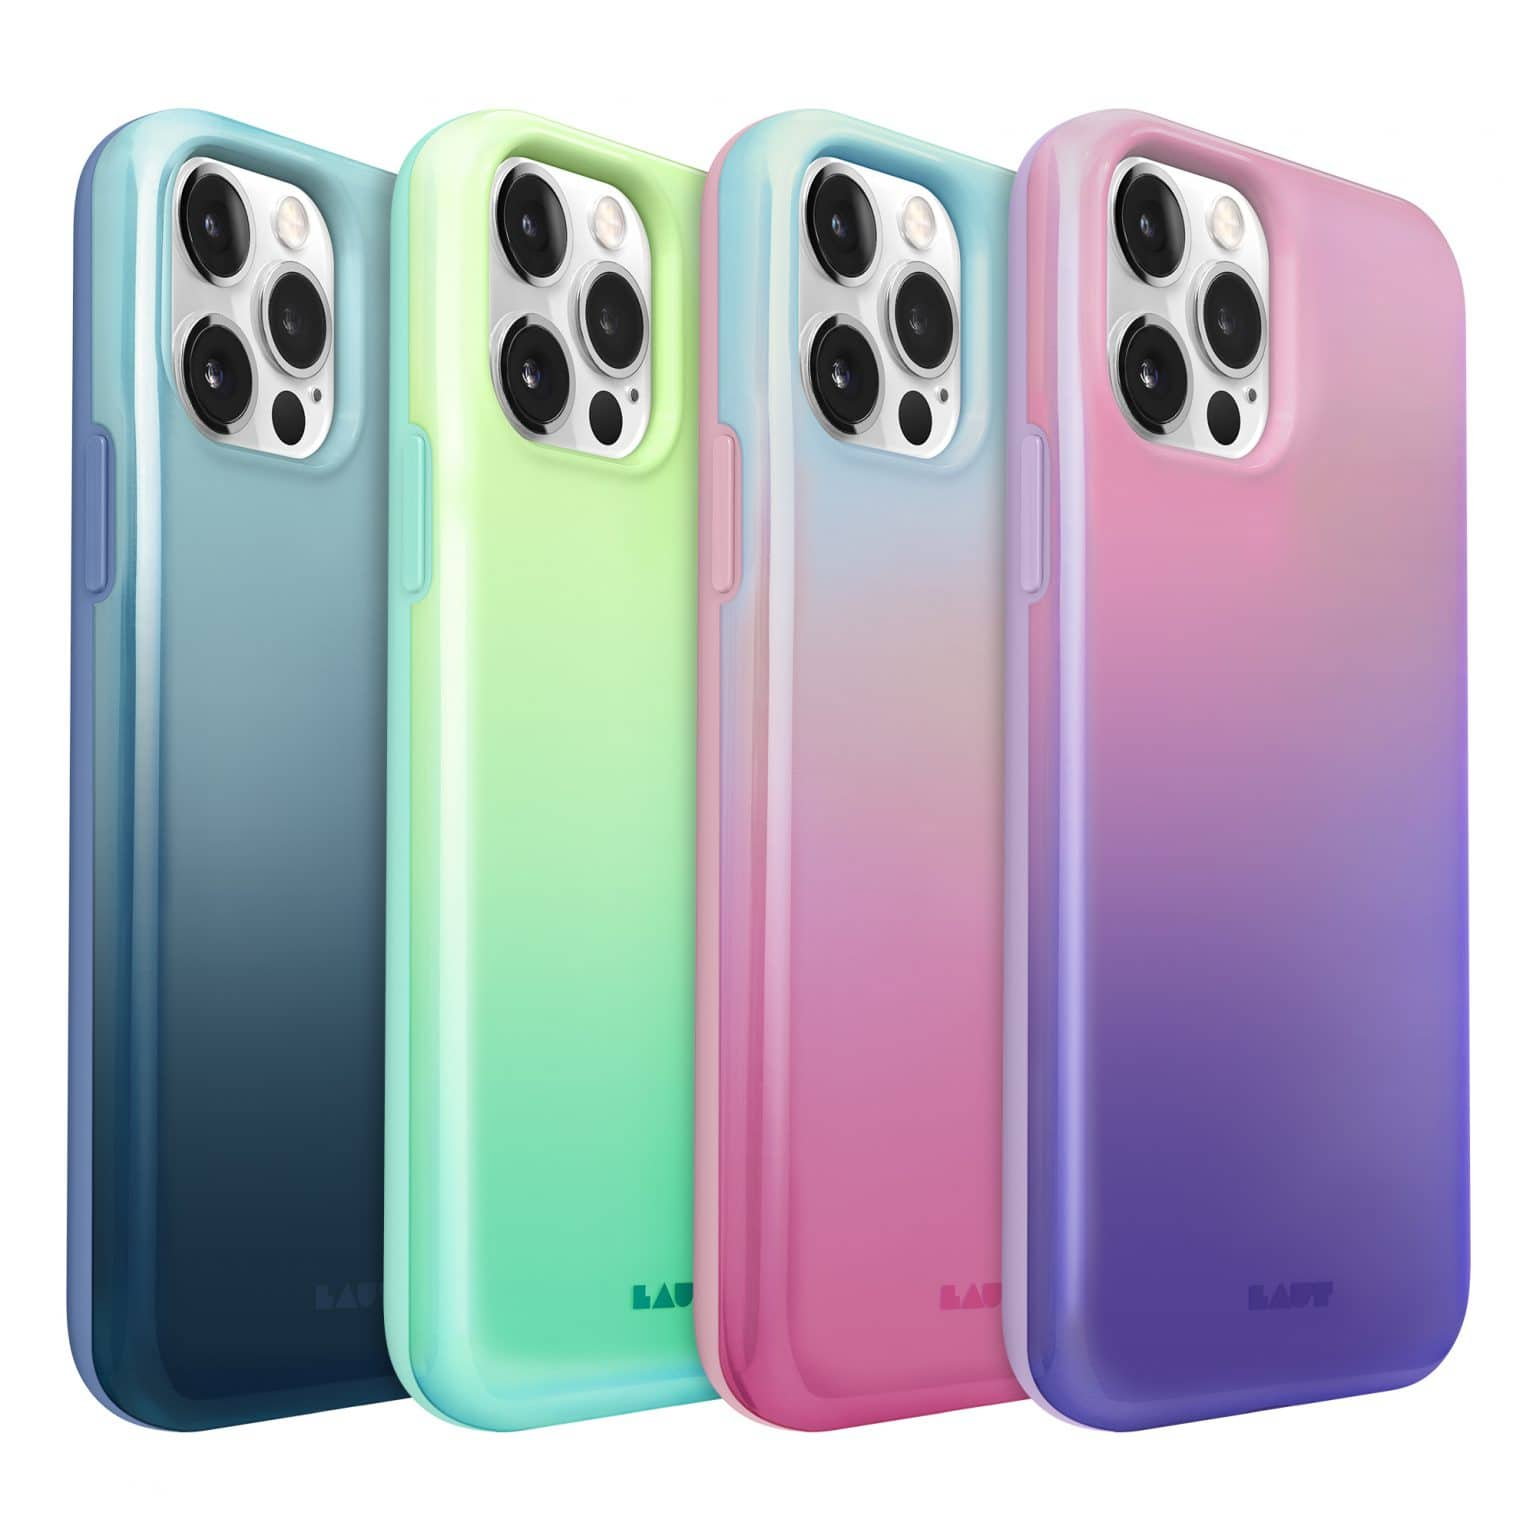 The Huex Fades case for iPhone 12 comes in a variety of iridescent finishes.